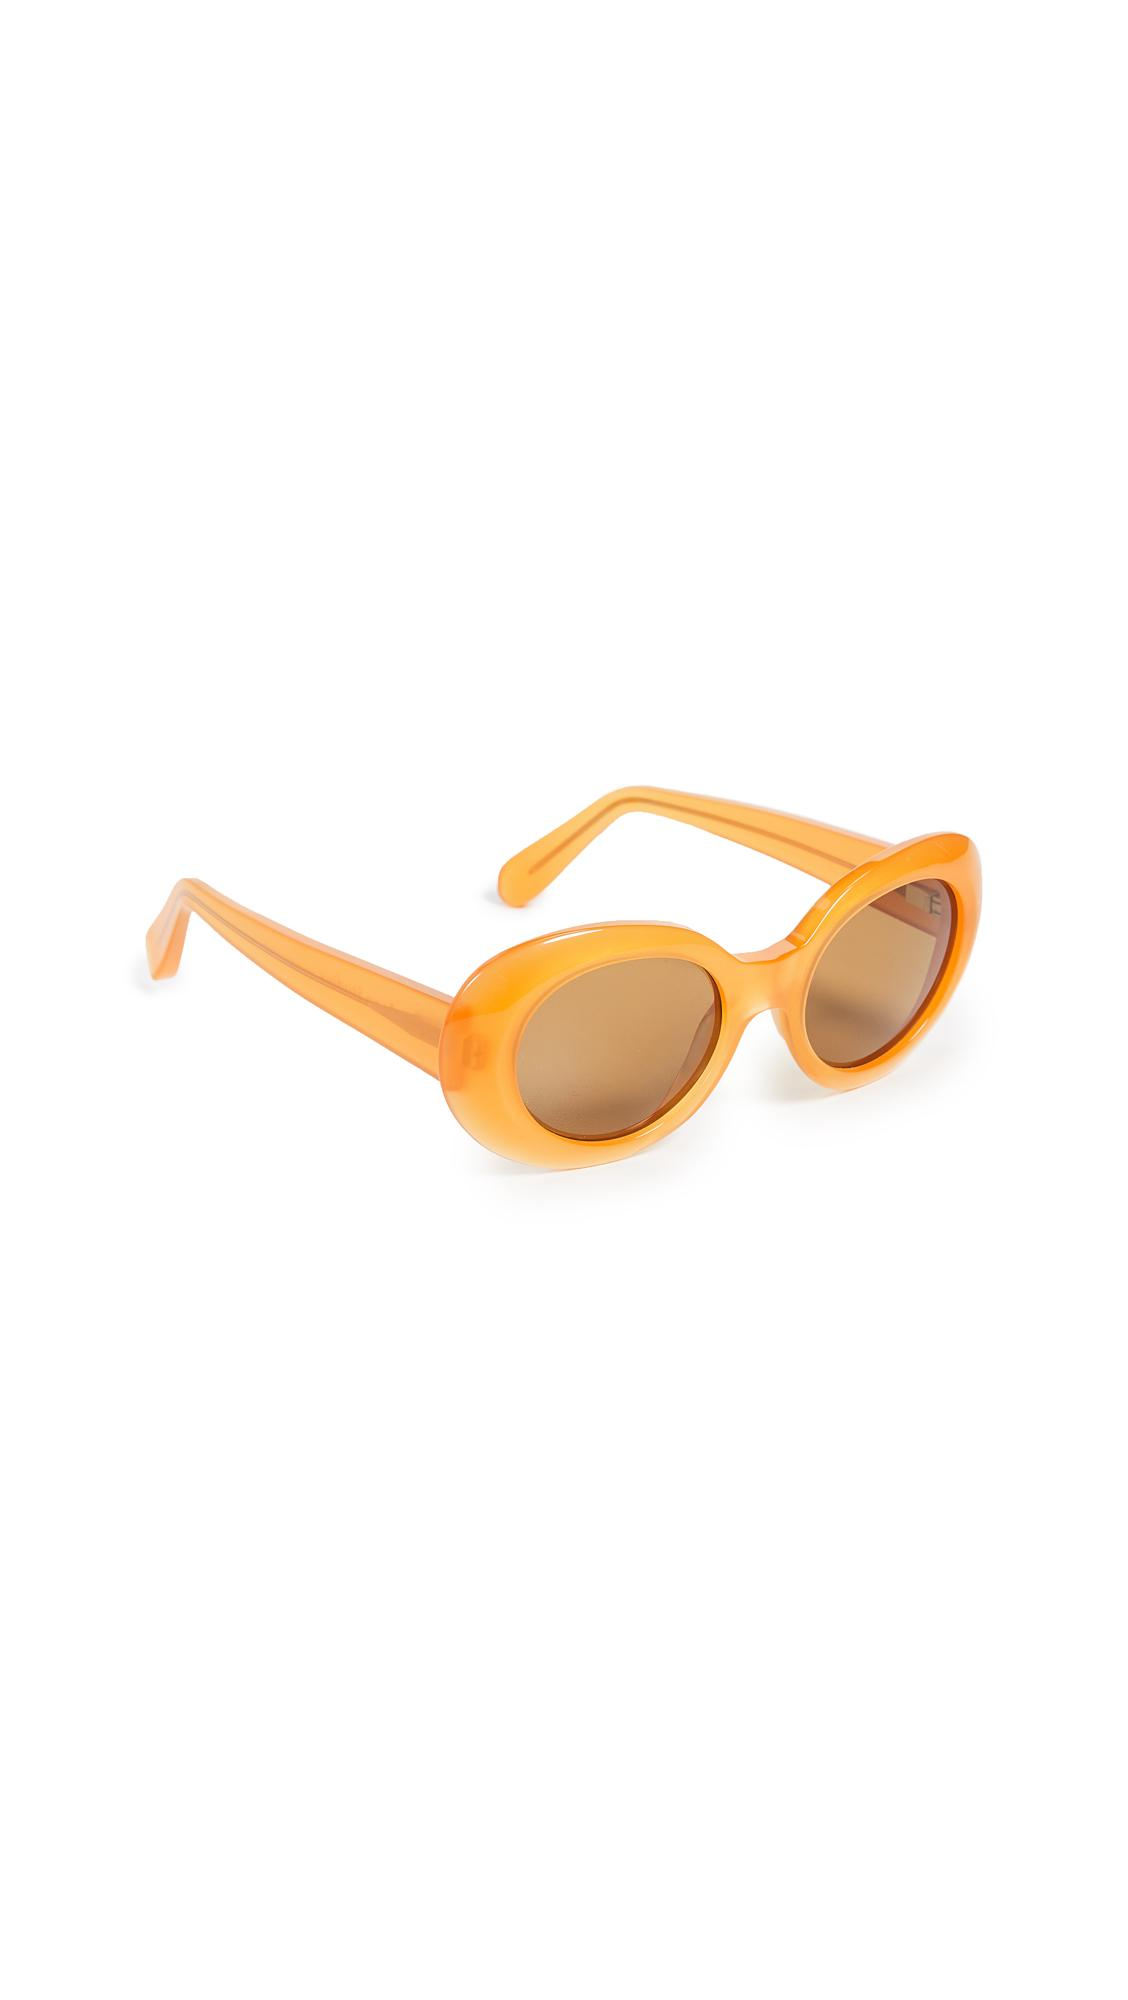 7dab8b2743 Acne Studios Mustang orange brown are handmade oval frame acetate sunglasses.  Acetate frame 100% UV protection. Nose pads in frame